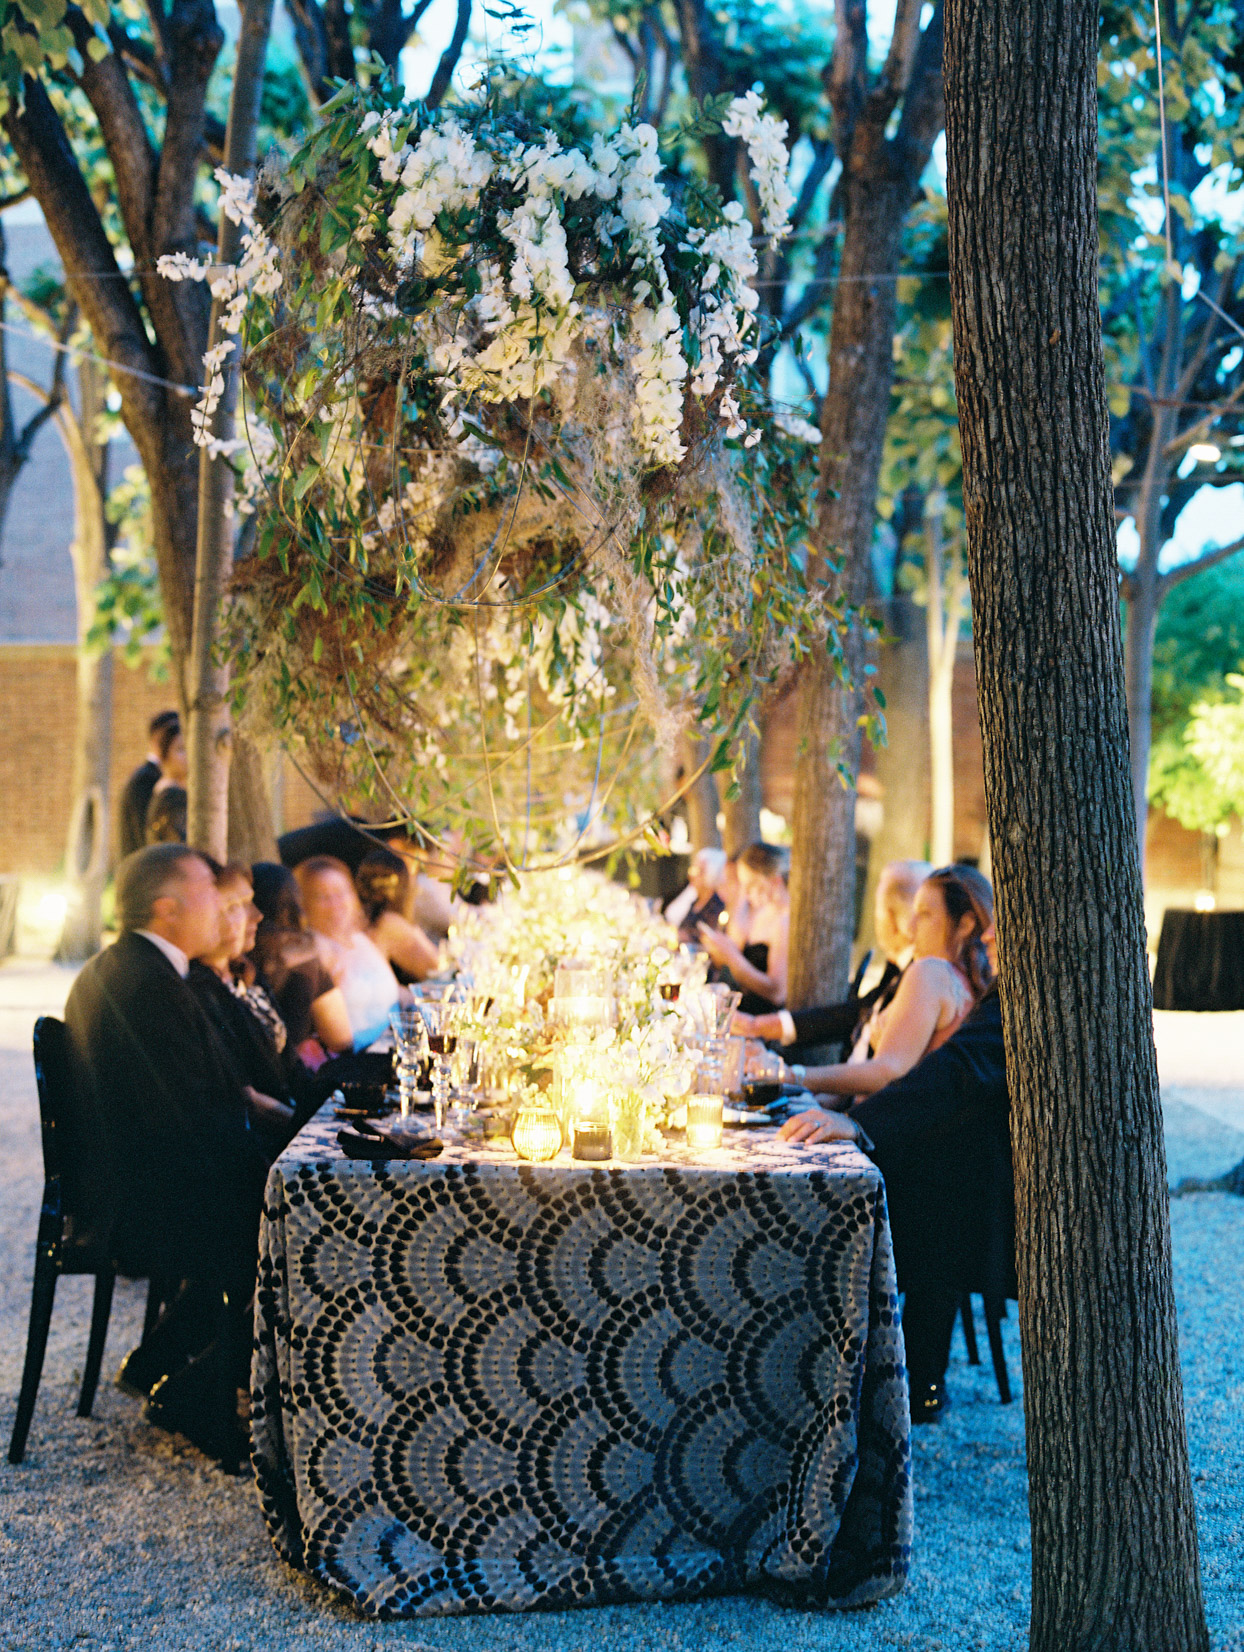 outdoor wedding dinner reception with candles and florals